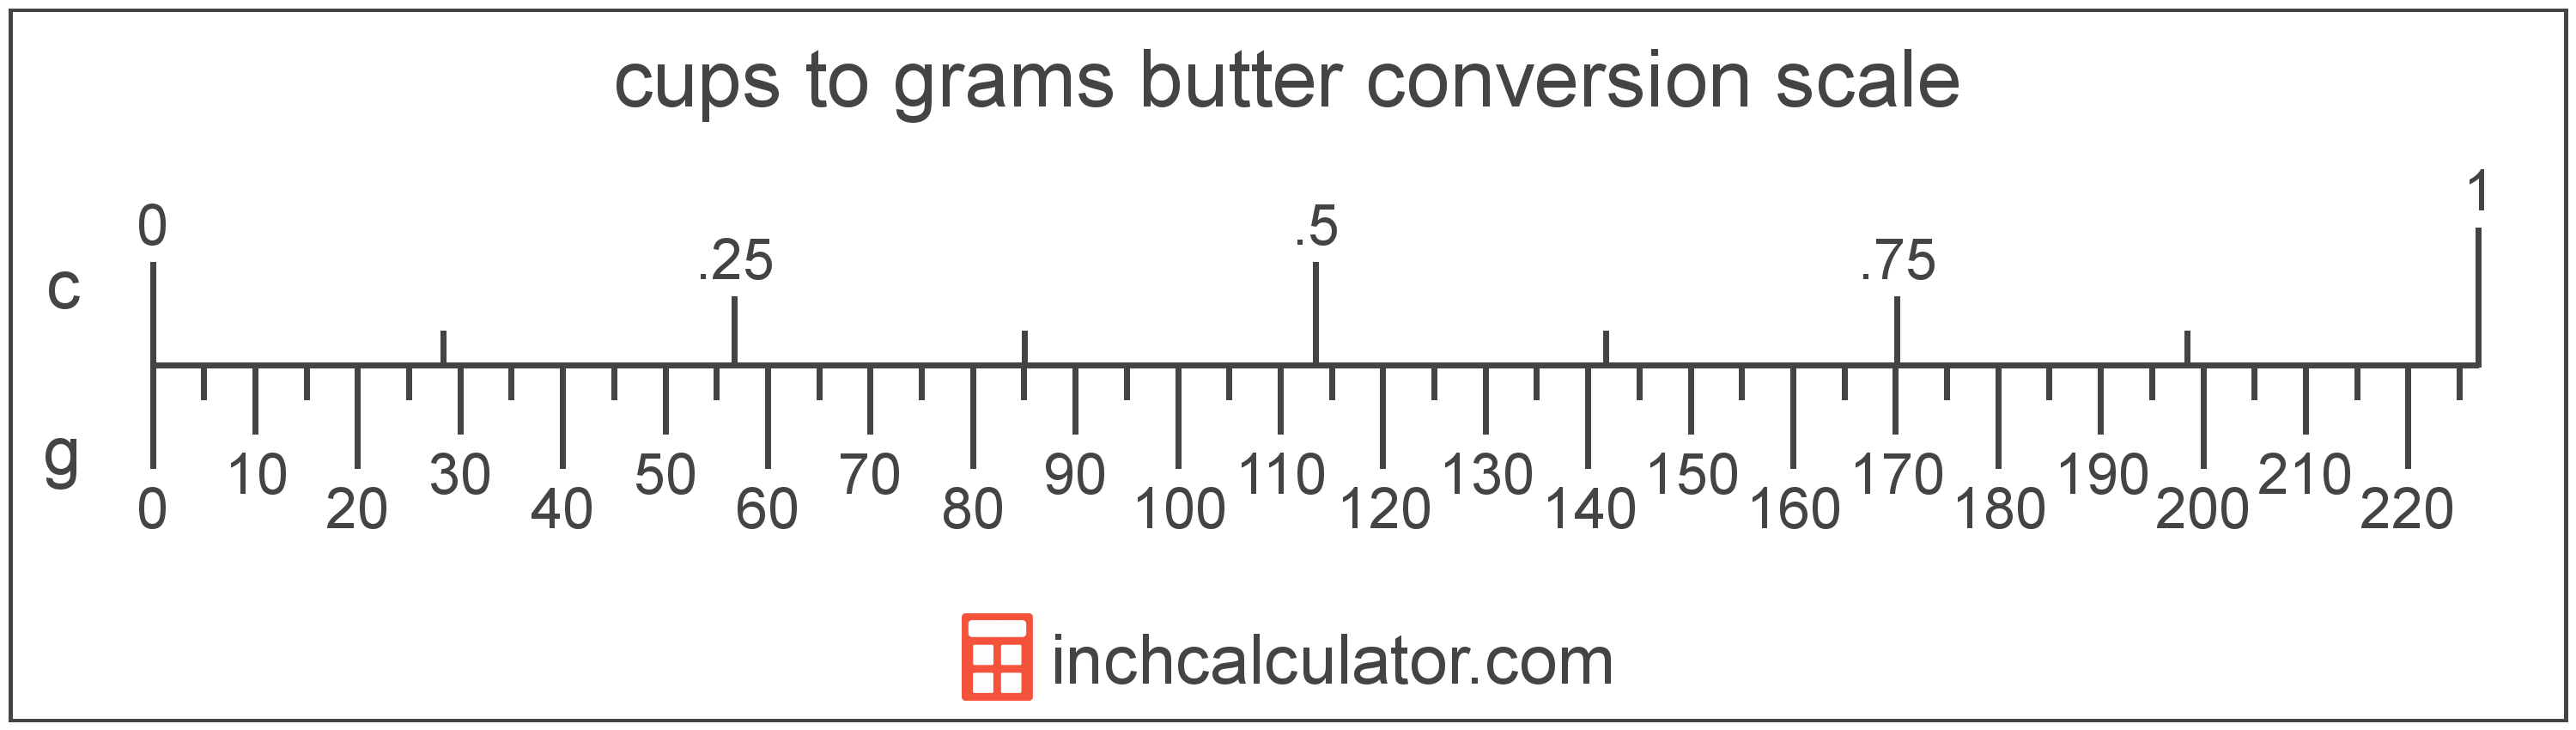 Grams Of Butter To Cups Conversion G To C